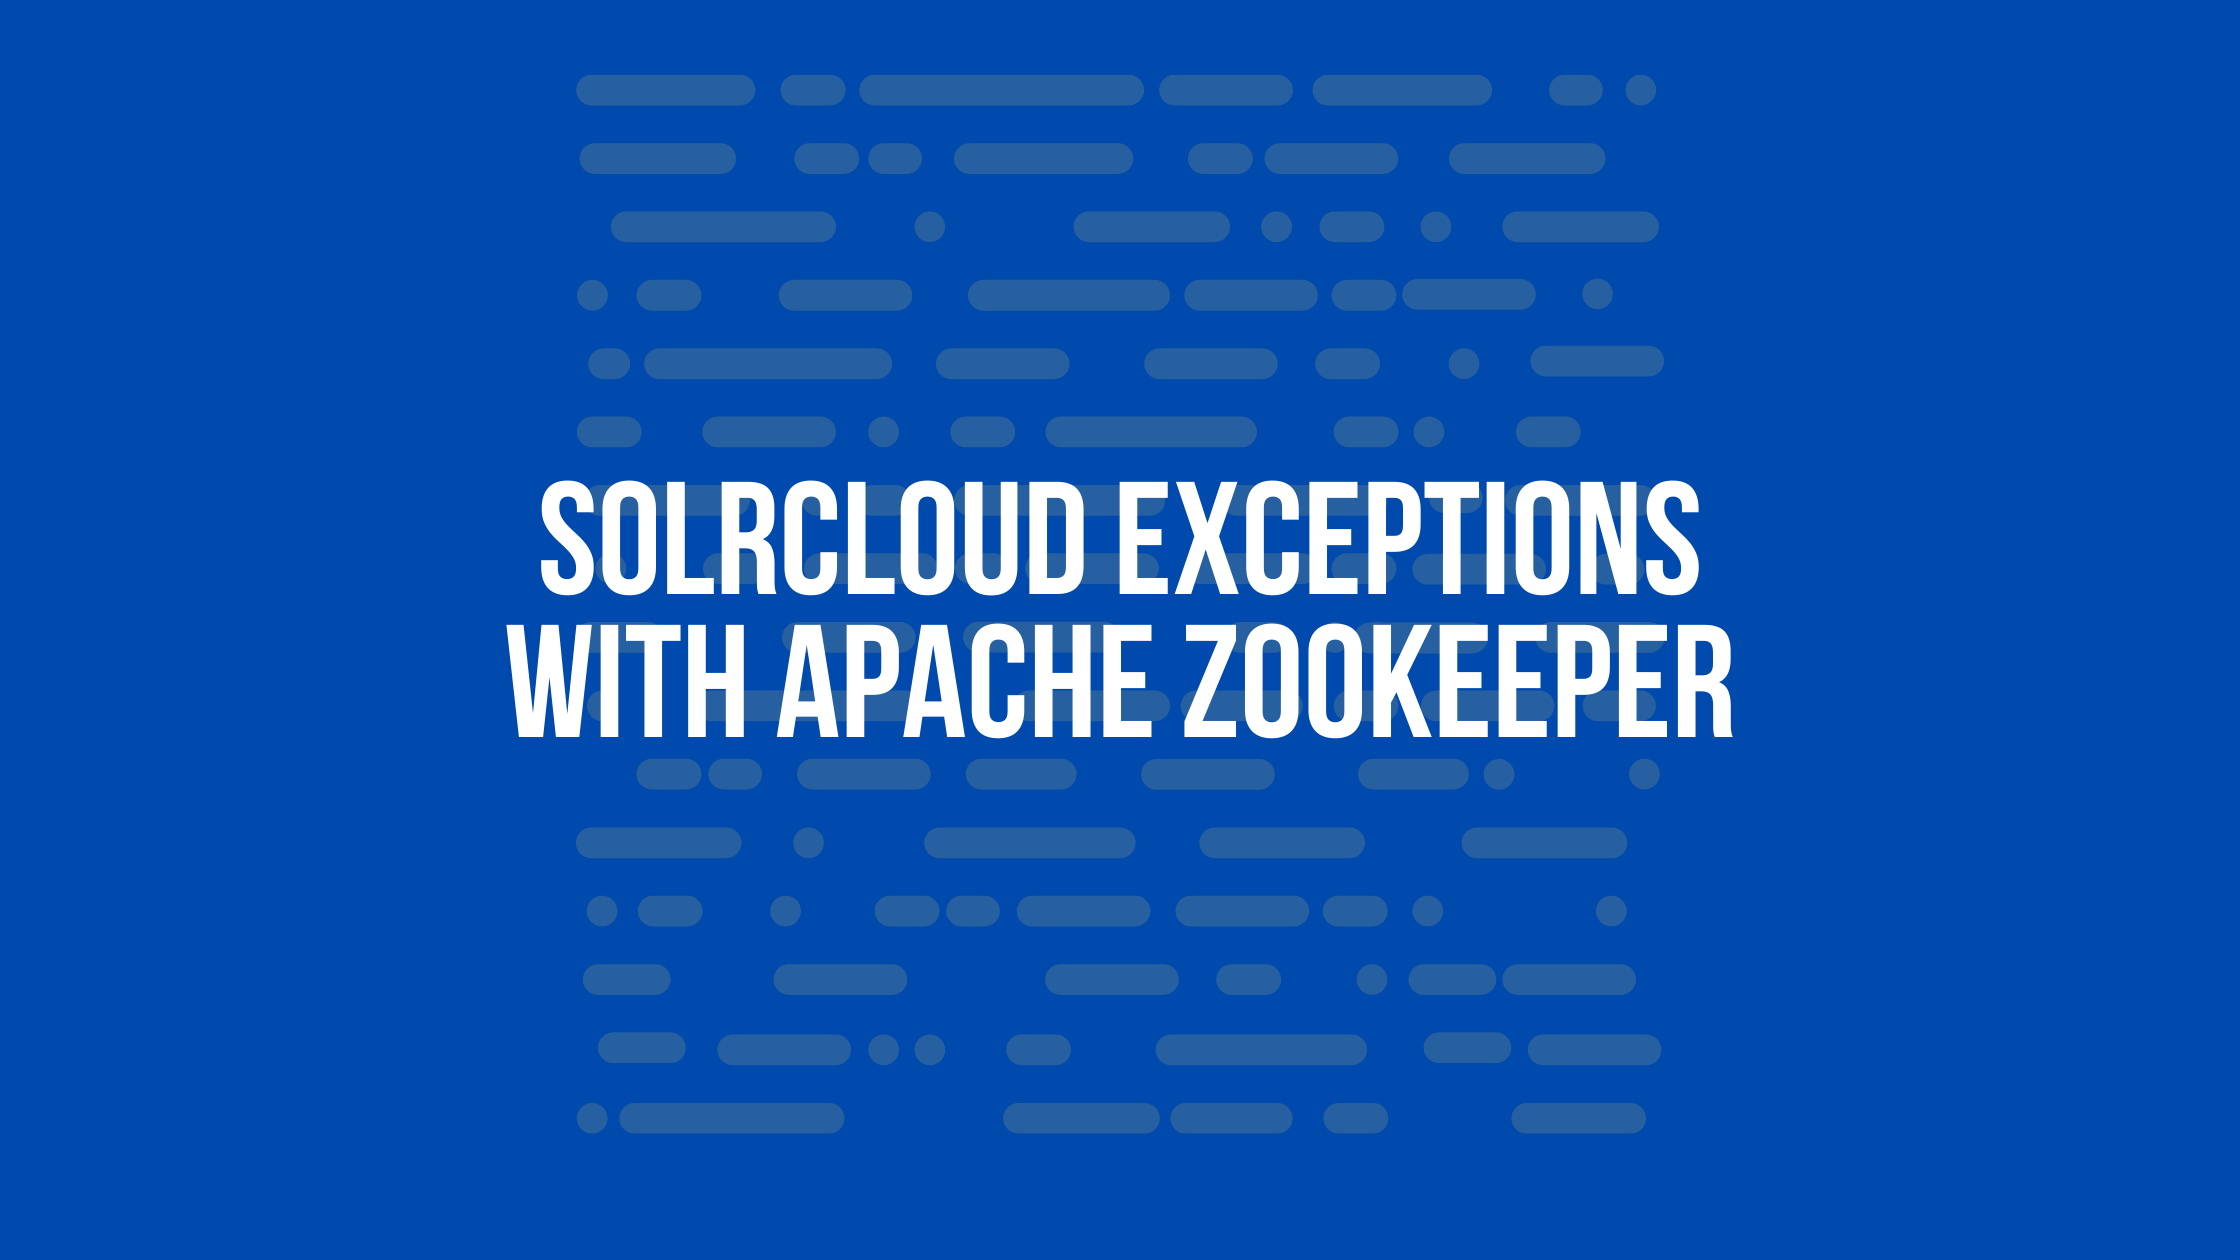 SolrCloud exceptions with Apache Zookeeper